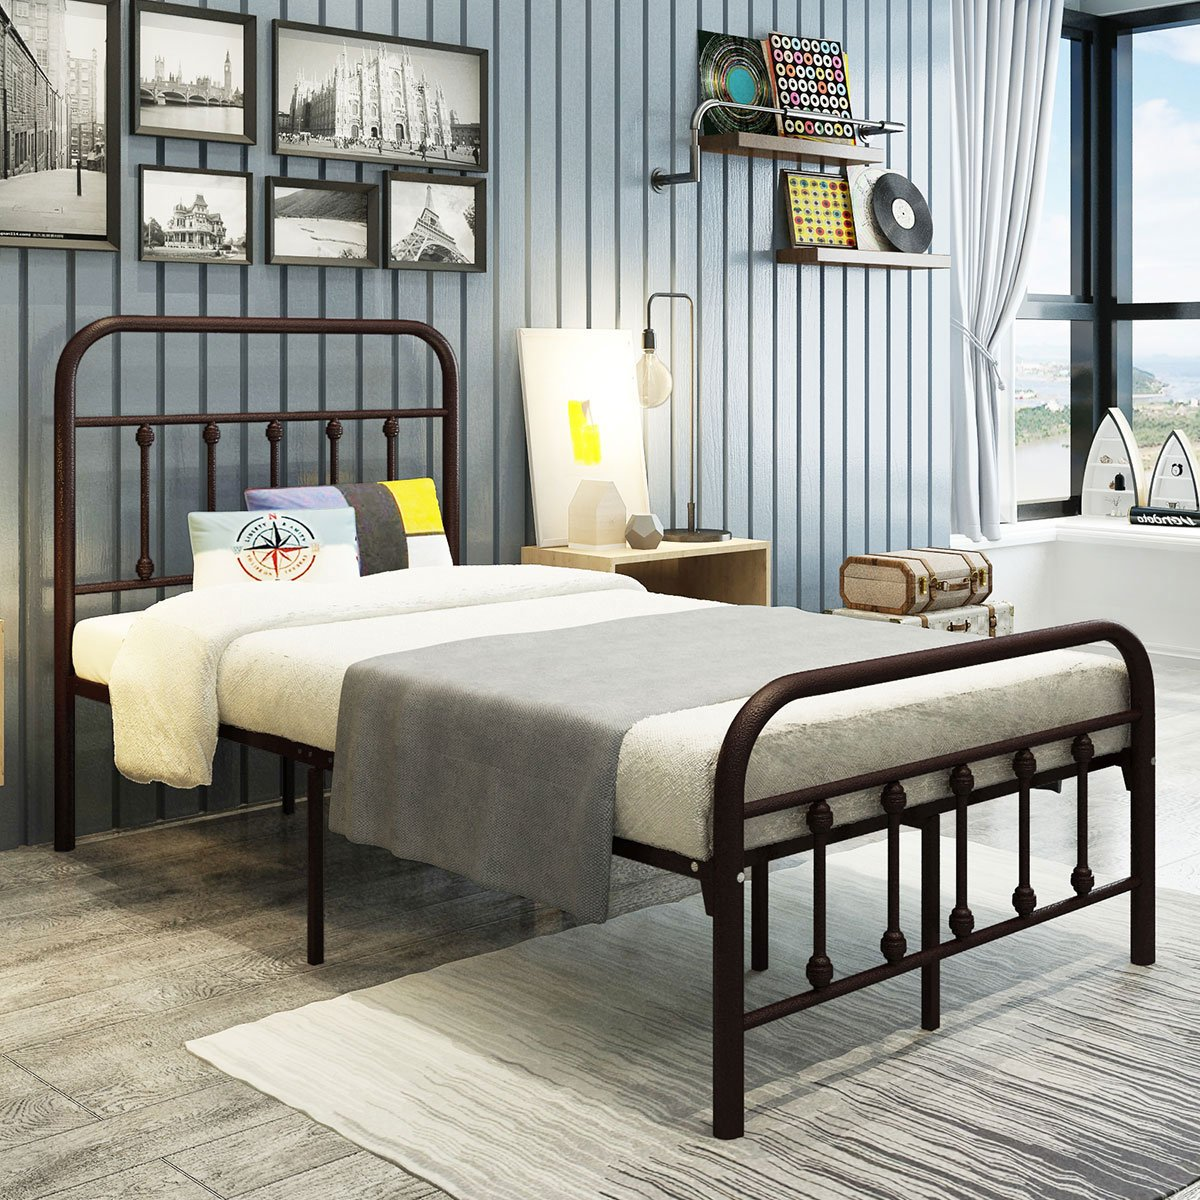 DUMEE Metal Beds with Headboard and Footboard Mattress Foundation Box Spring Replacement Steel Slat Support Twin Size Bronze